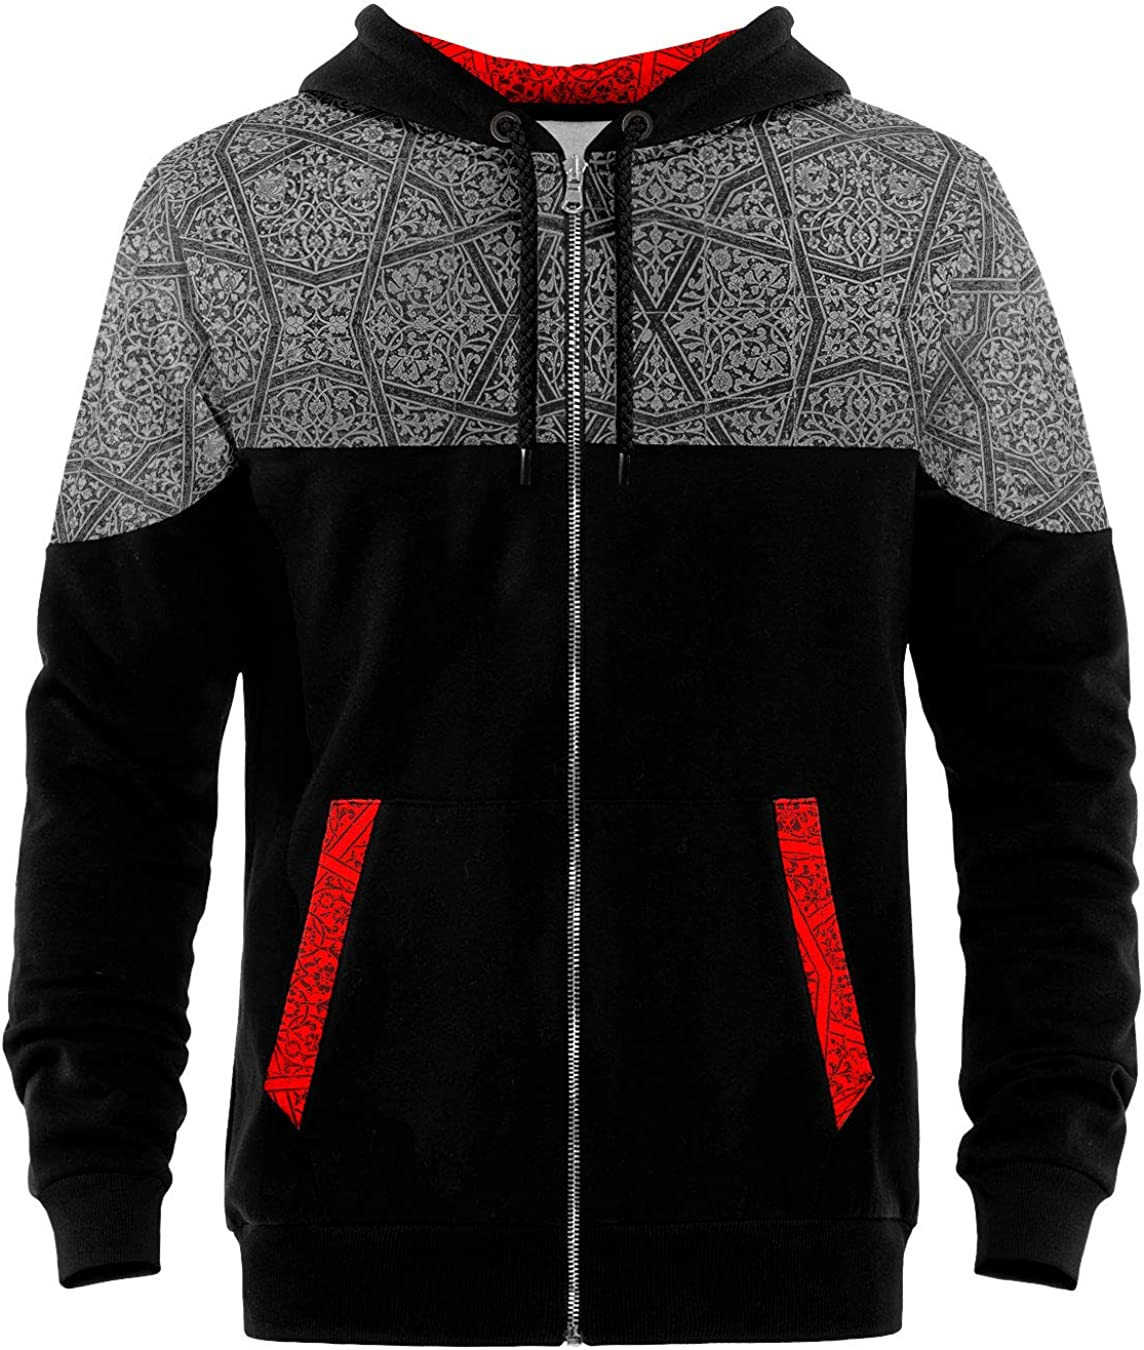 Blowhammer - Sudaderas con Capucha Hombre - Labyrinth SWH